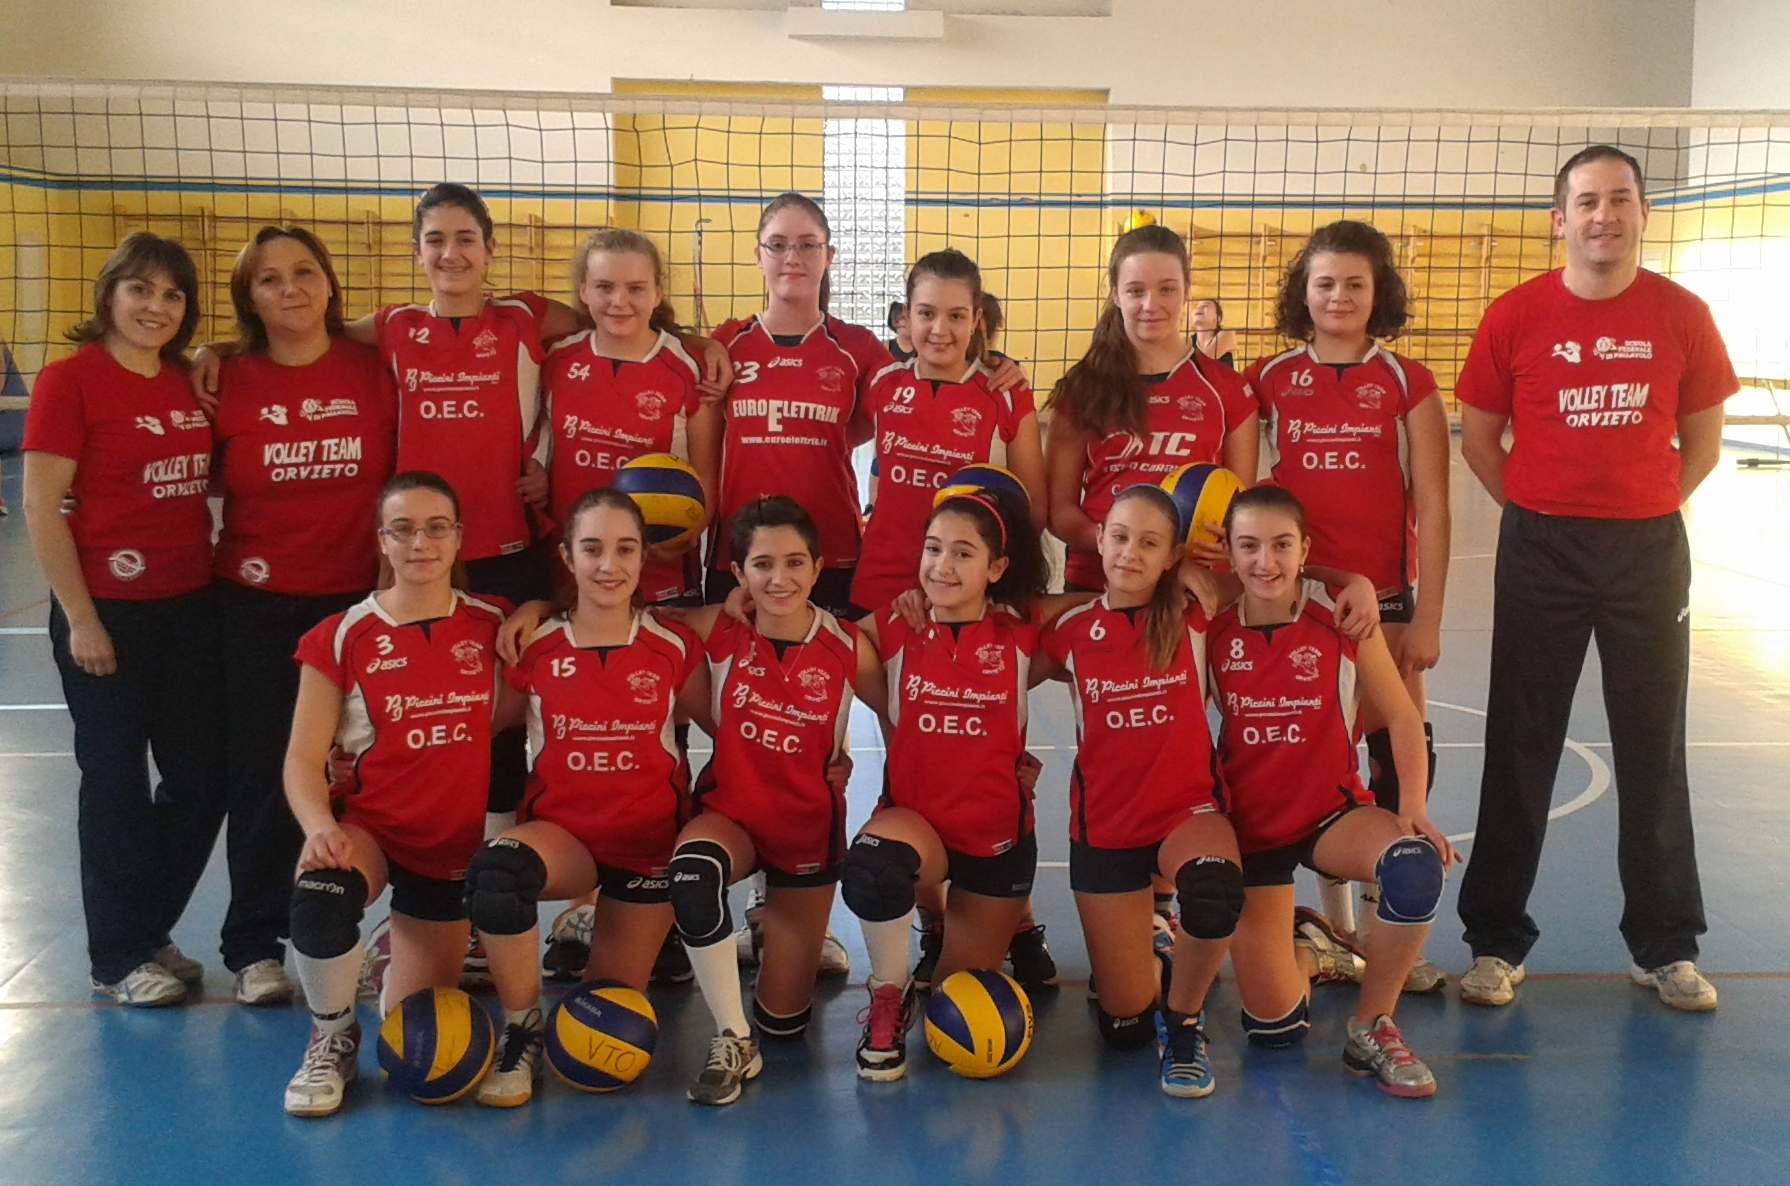 Volley Team U13, missione compiuta! Finalissima play-off